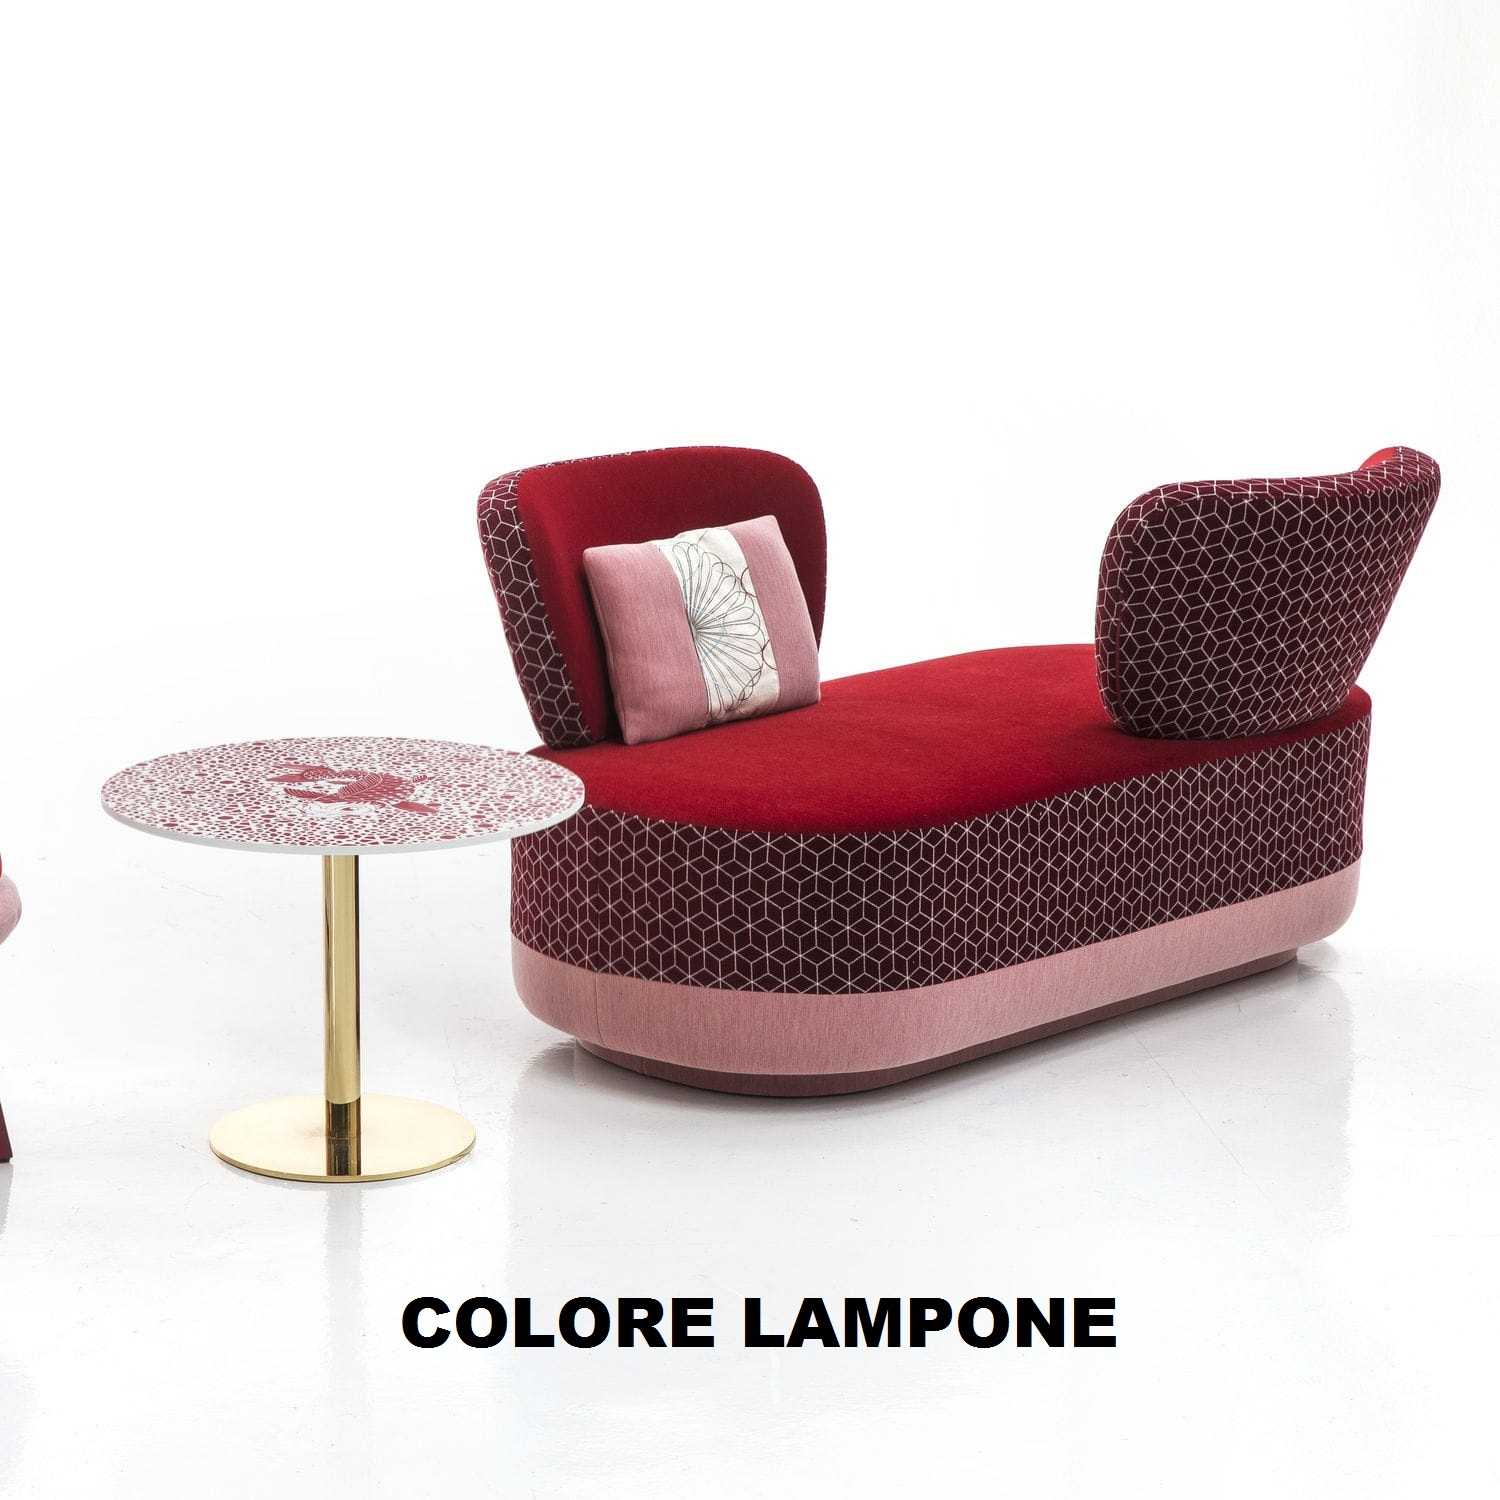 lampone - DESIGN Sushi collection Moroso